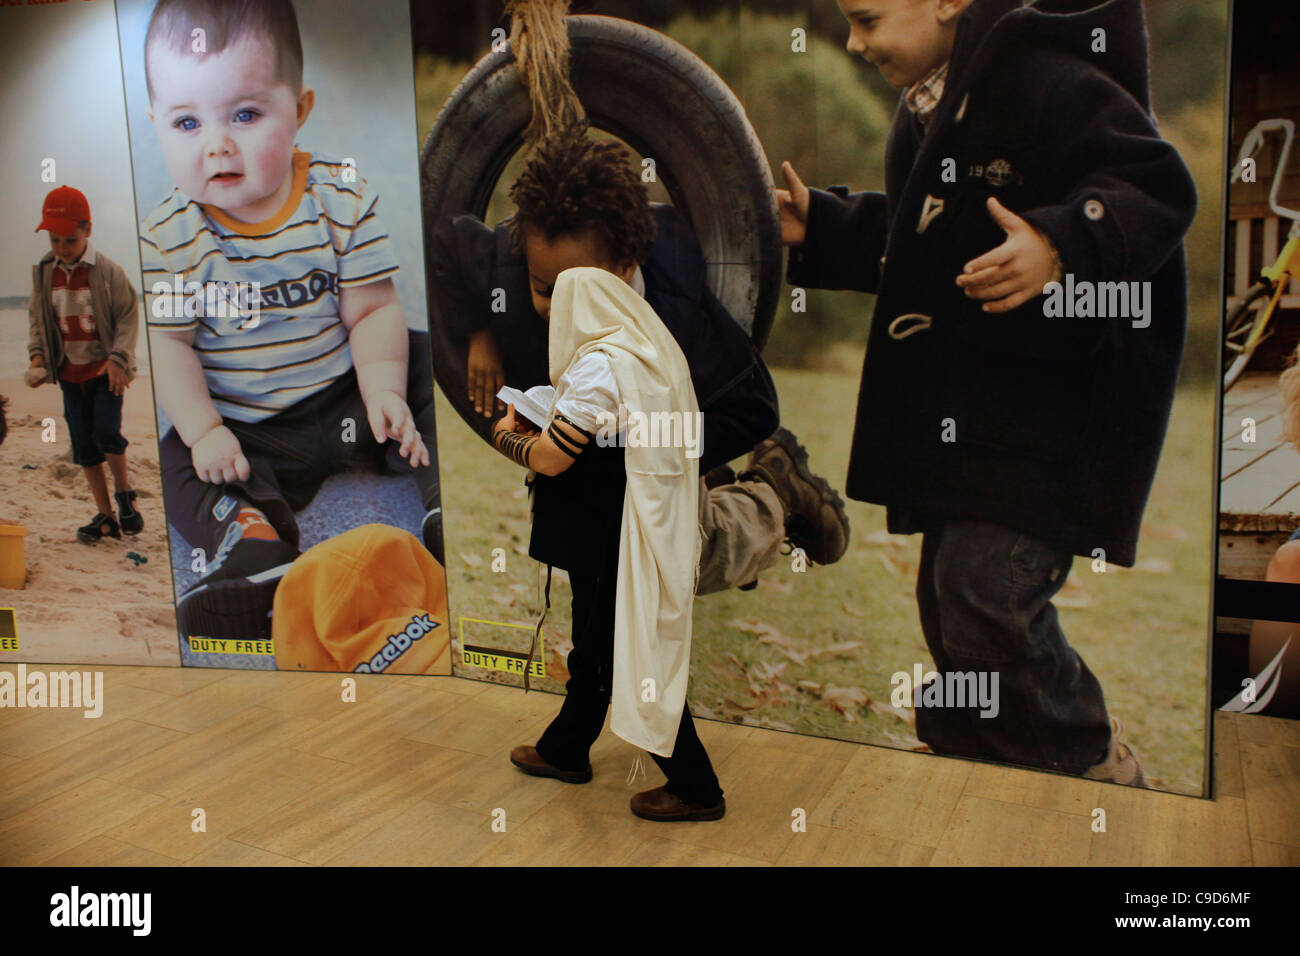 A religious Jewish man wrapped with traditional prayer shawl walk past Children clothing advertisement posters at - Stock Image